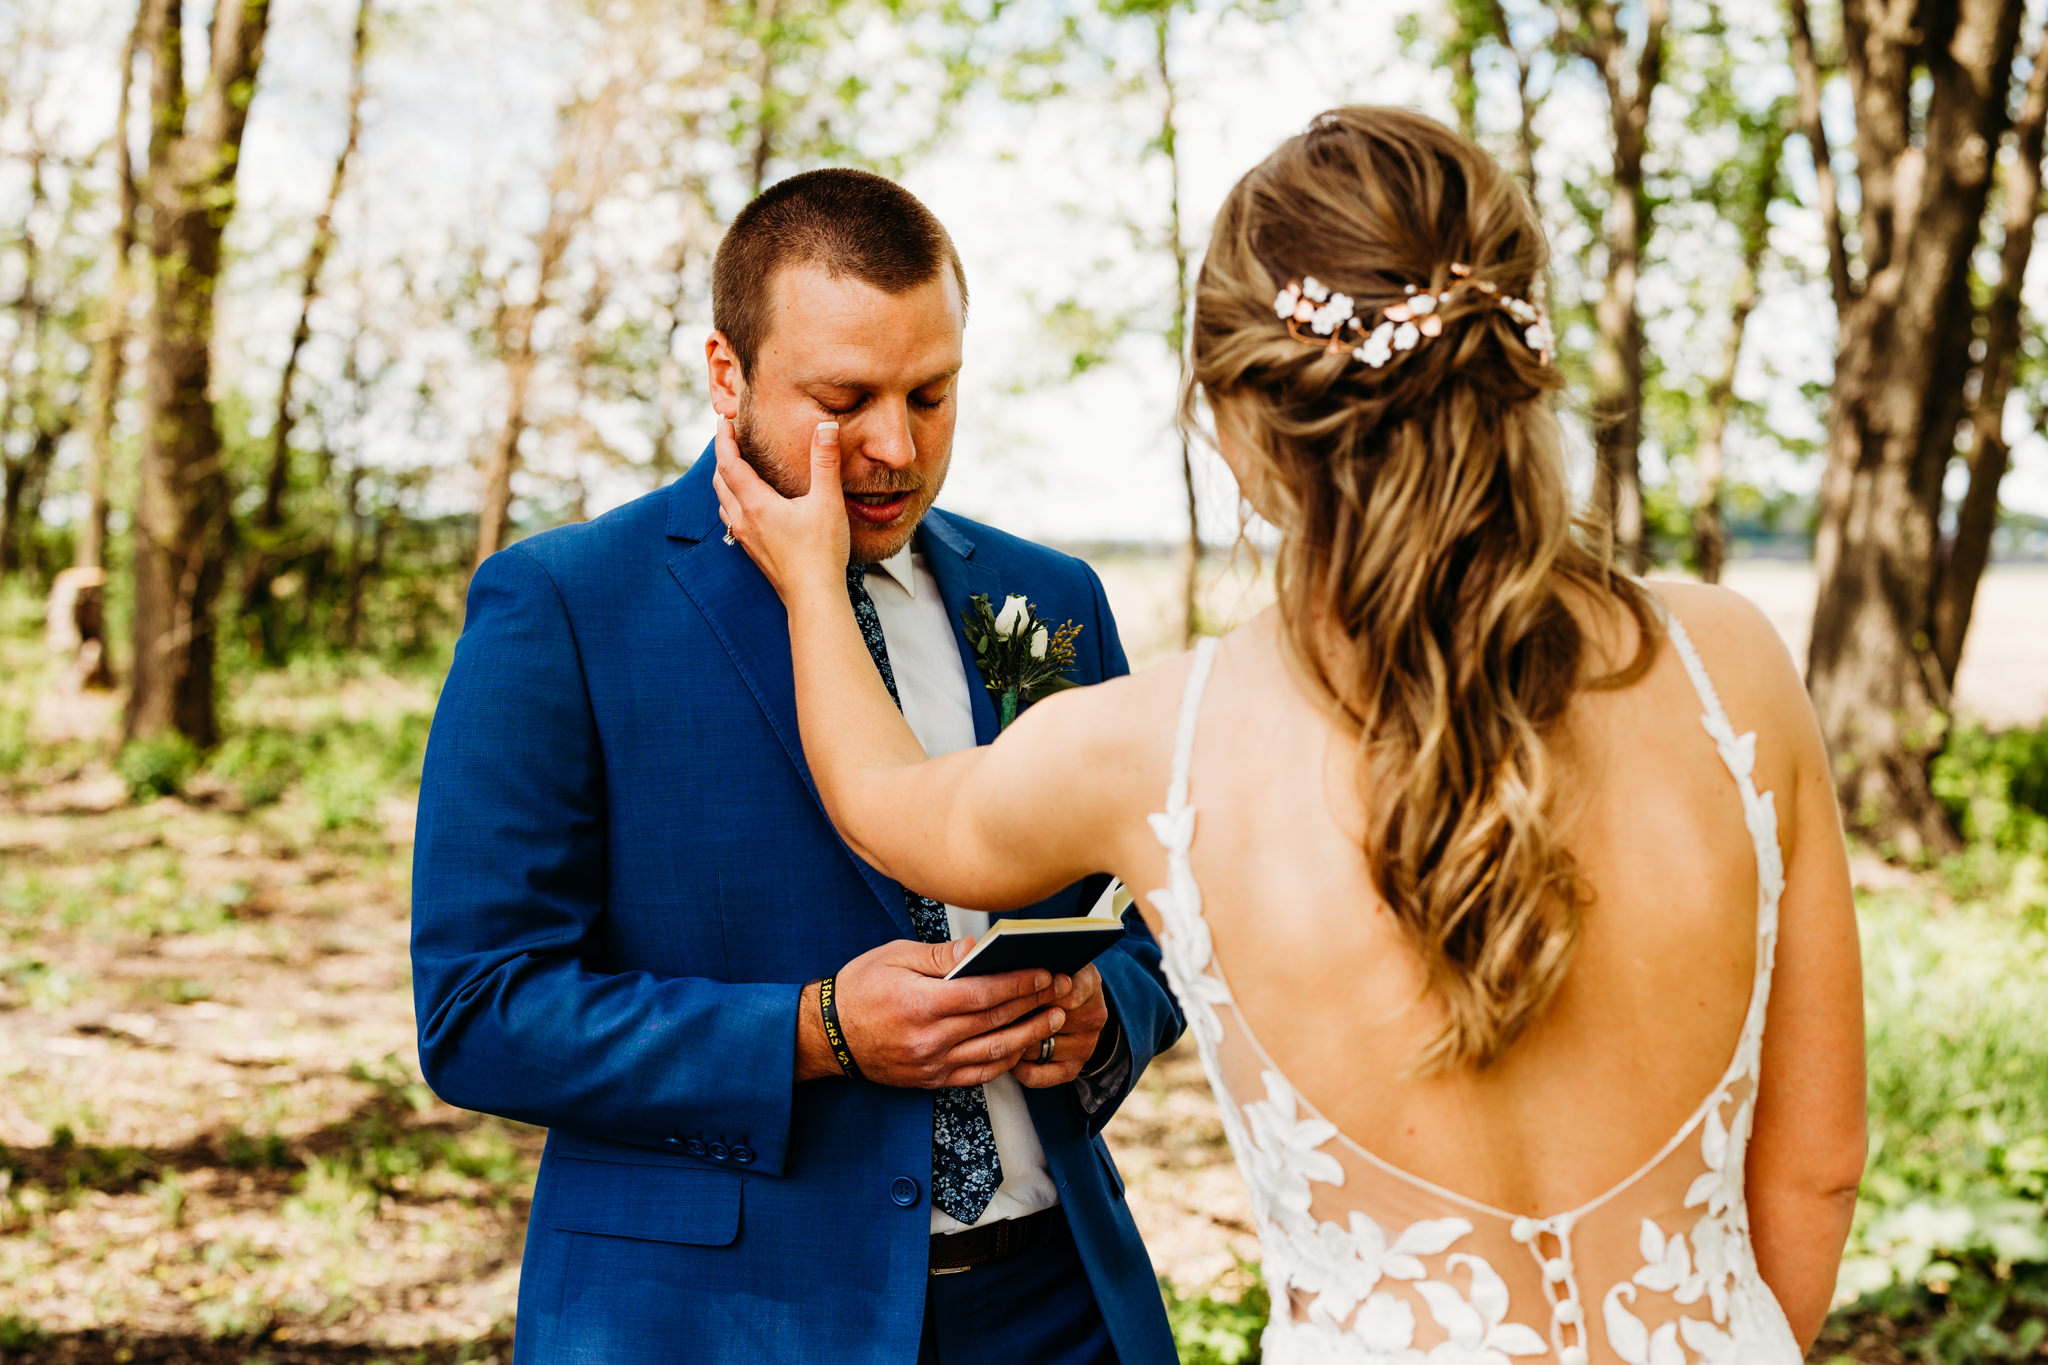 Emotional wedding photography captures bride wiping her groom's tear as he reads his vows